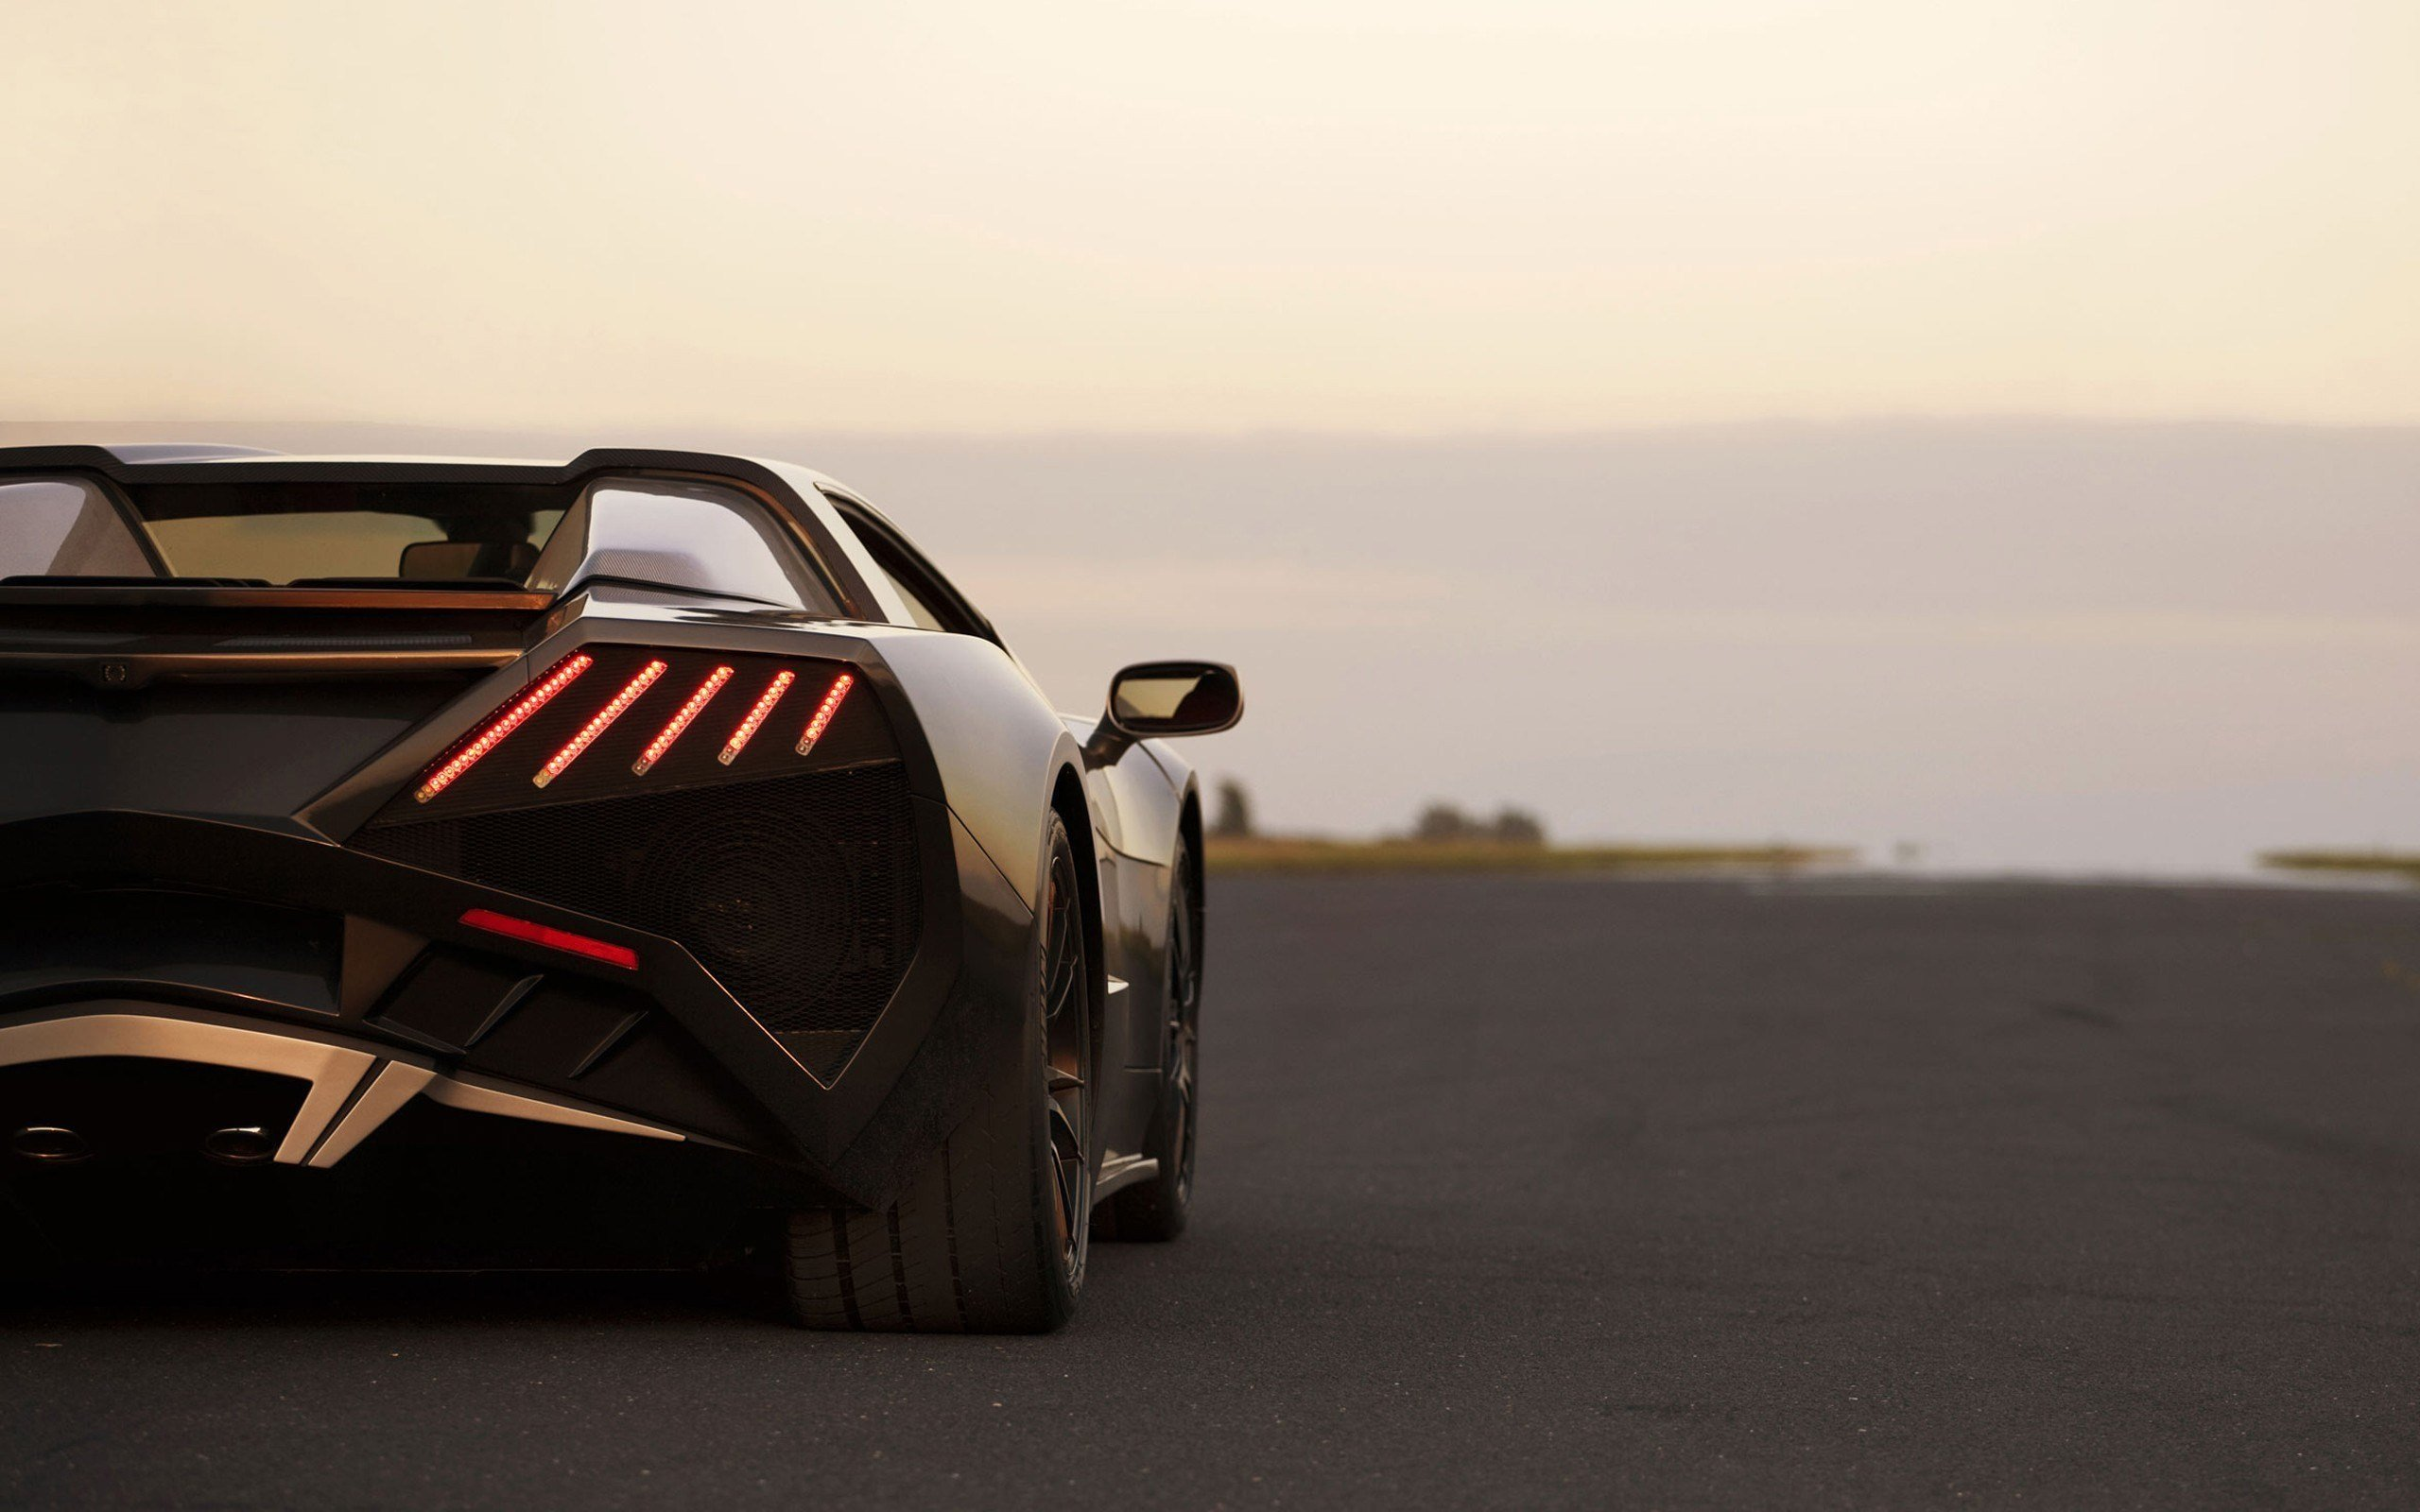 Latest Cars Polish Arrinera Rear View Taillights Wallpaper Free Download